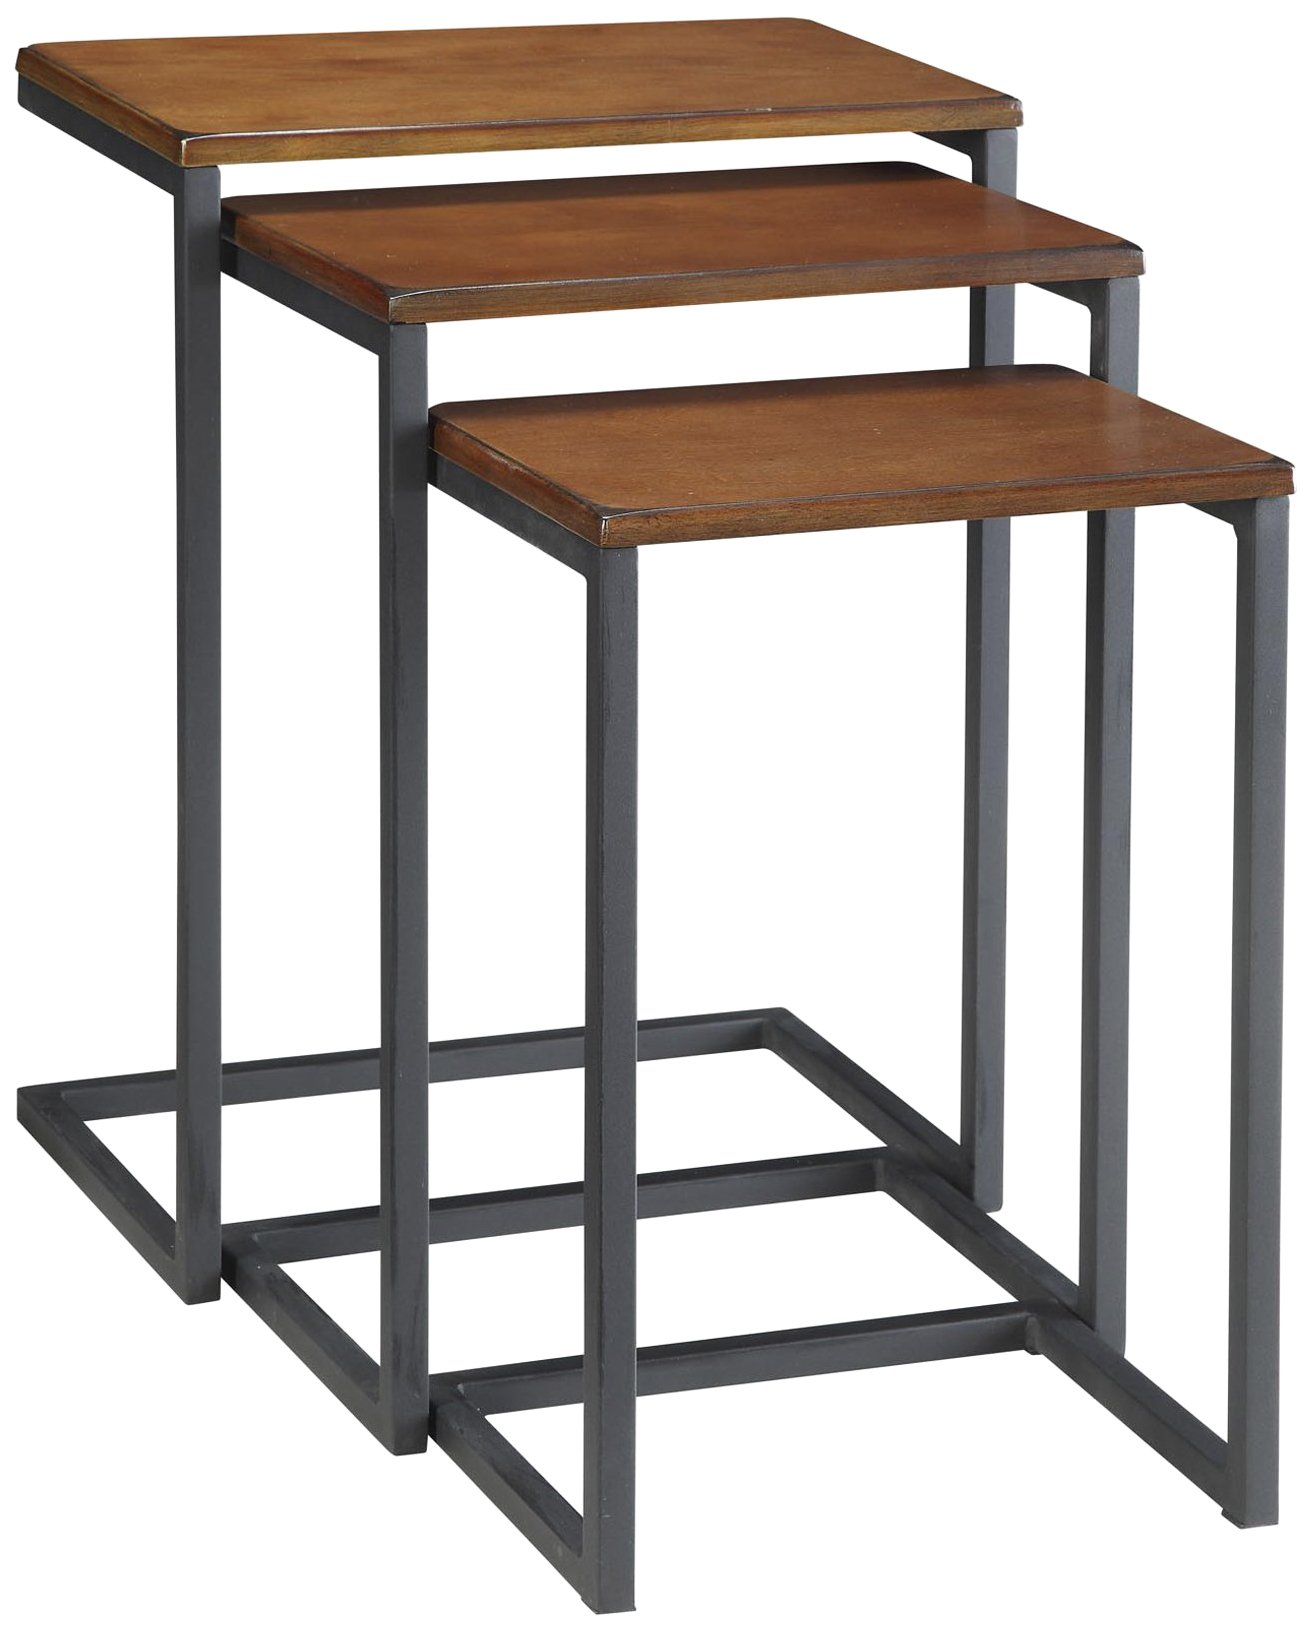 Carolina Chair and Table Madison Nesting Table, Set of 3 by Carolina Chair & Table